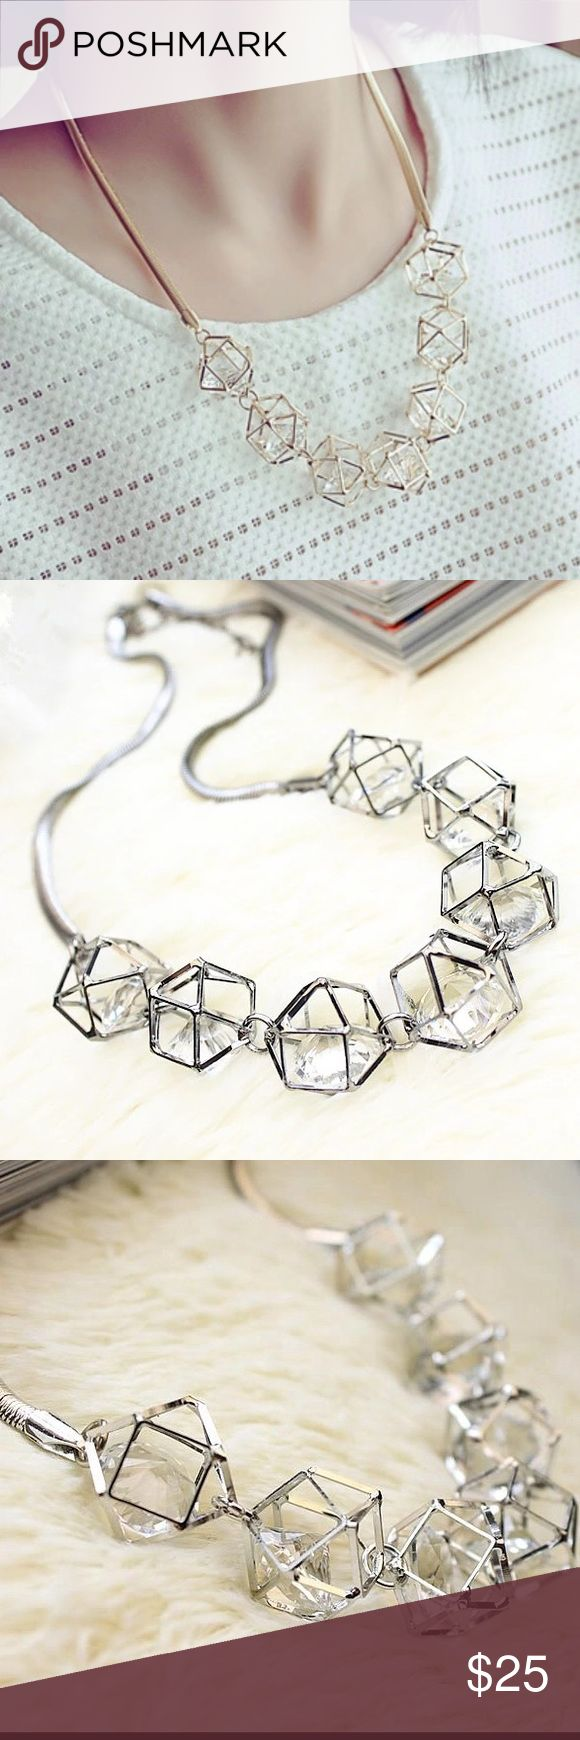 NWT Geometric Crystal Necklace Womens Hollow 3D Crystal Necklace. This is super cute and a great statement piece! New with tags! Jewelry Necklaces